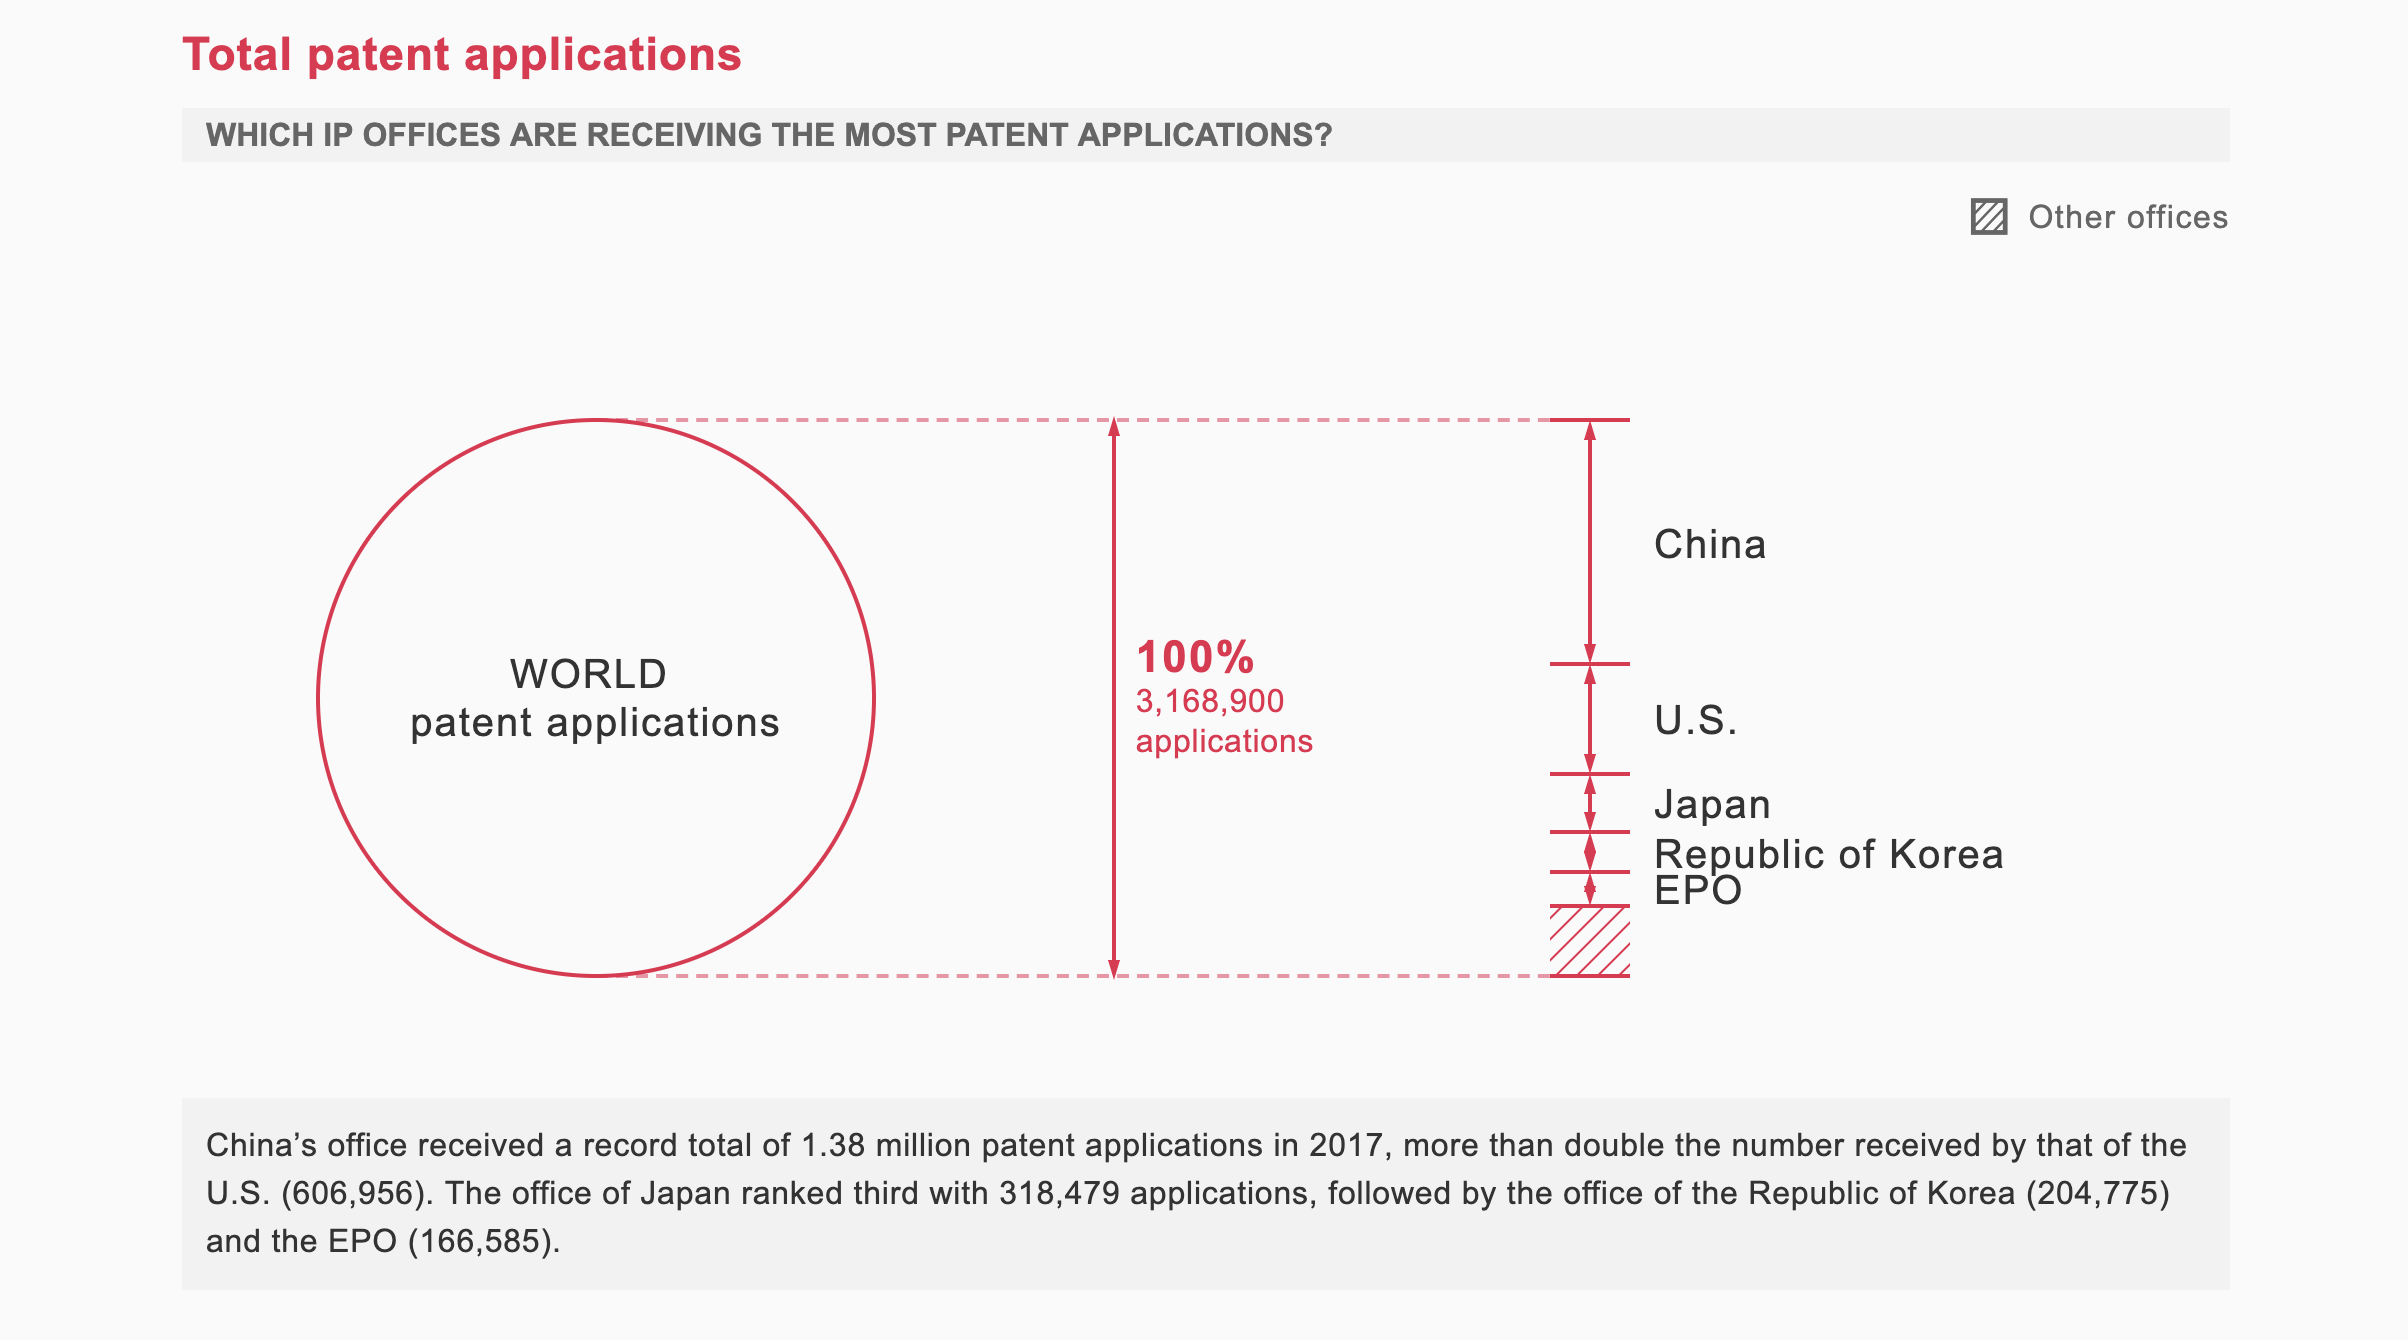 In 2017, China's patent office received more than twice the number of applications as its US counterpart